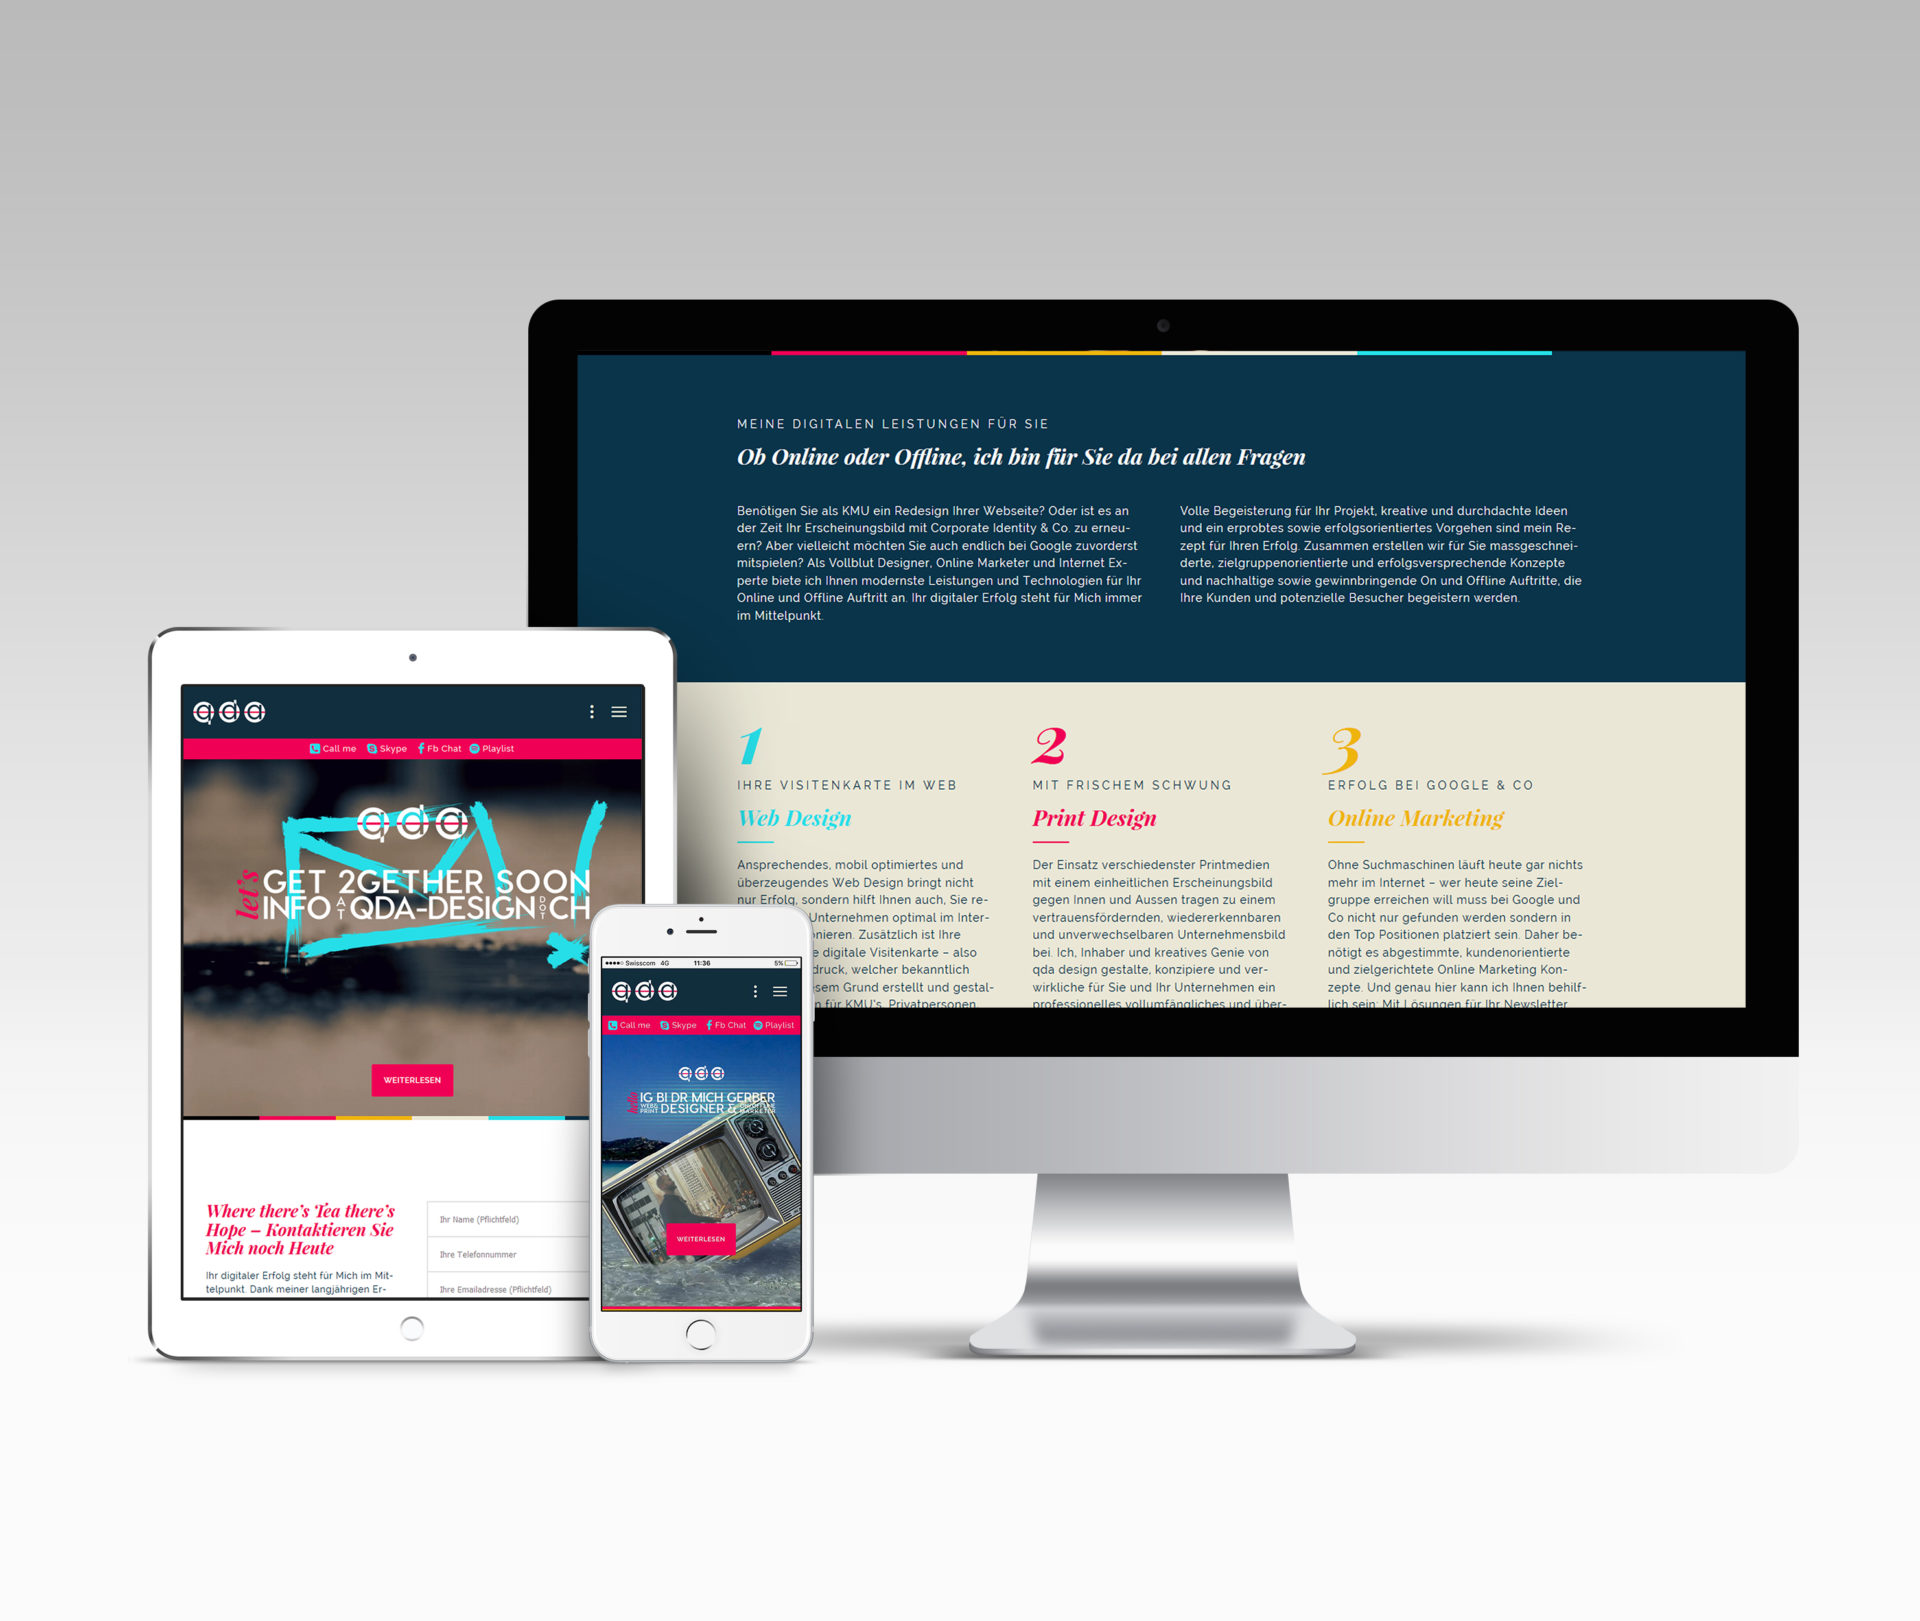 qda design portfolio: referenz: webseite von qda design (responsive wordpress)